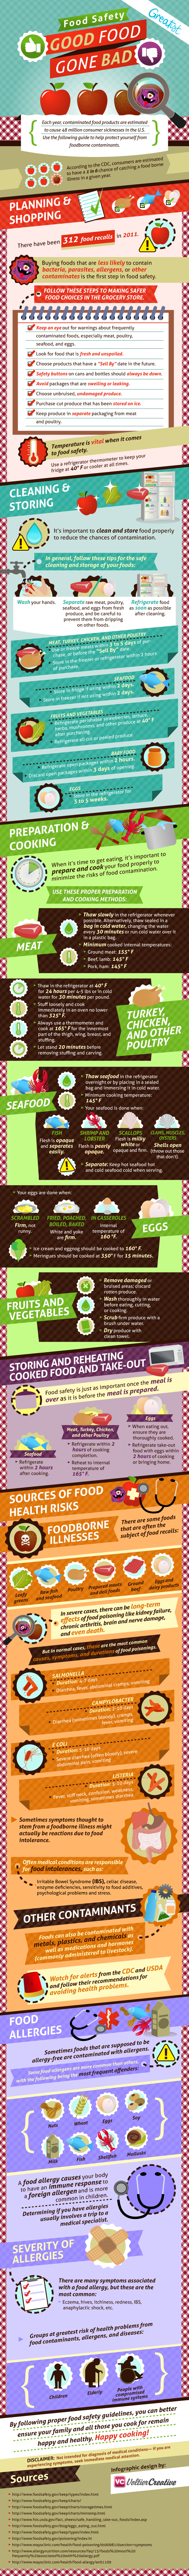 Facts with Food Safety